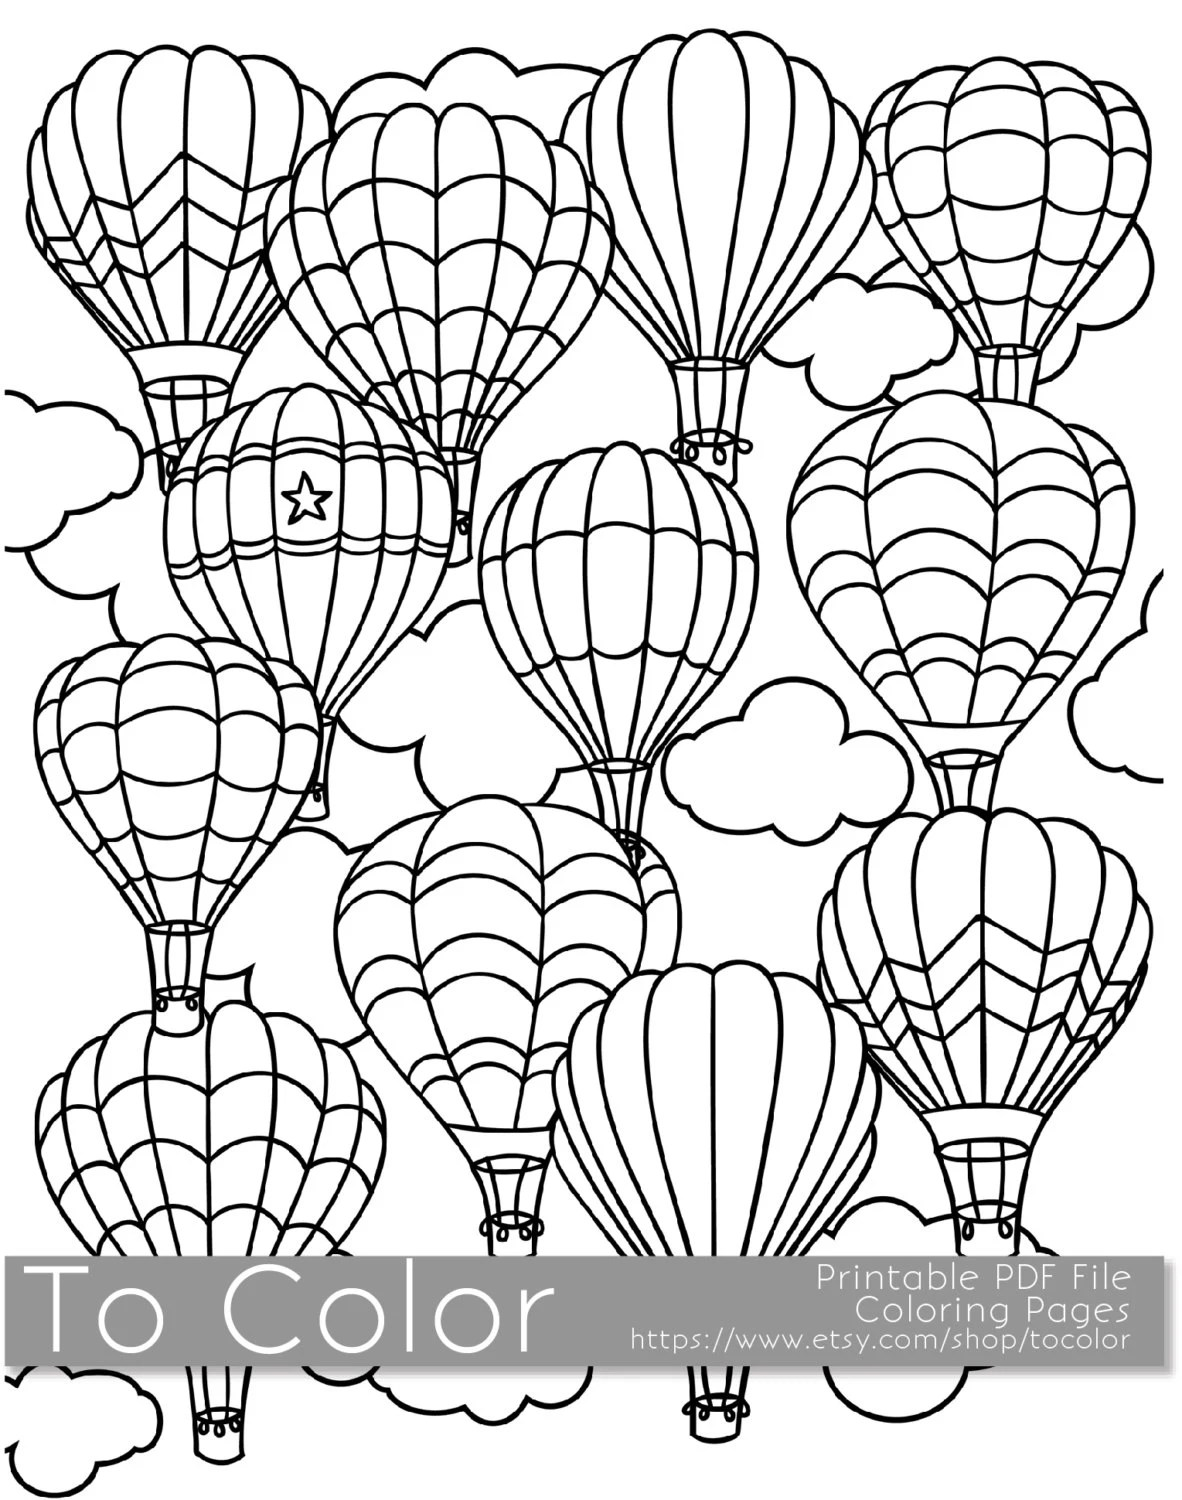 Printable Hot Air Balloon Coloring Page for Adults PDF / JPG